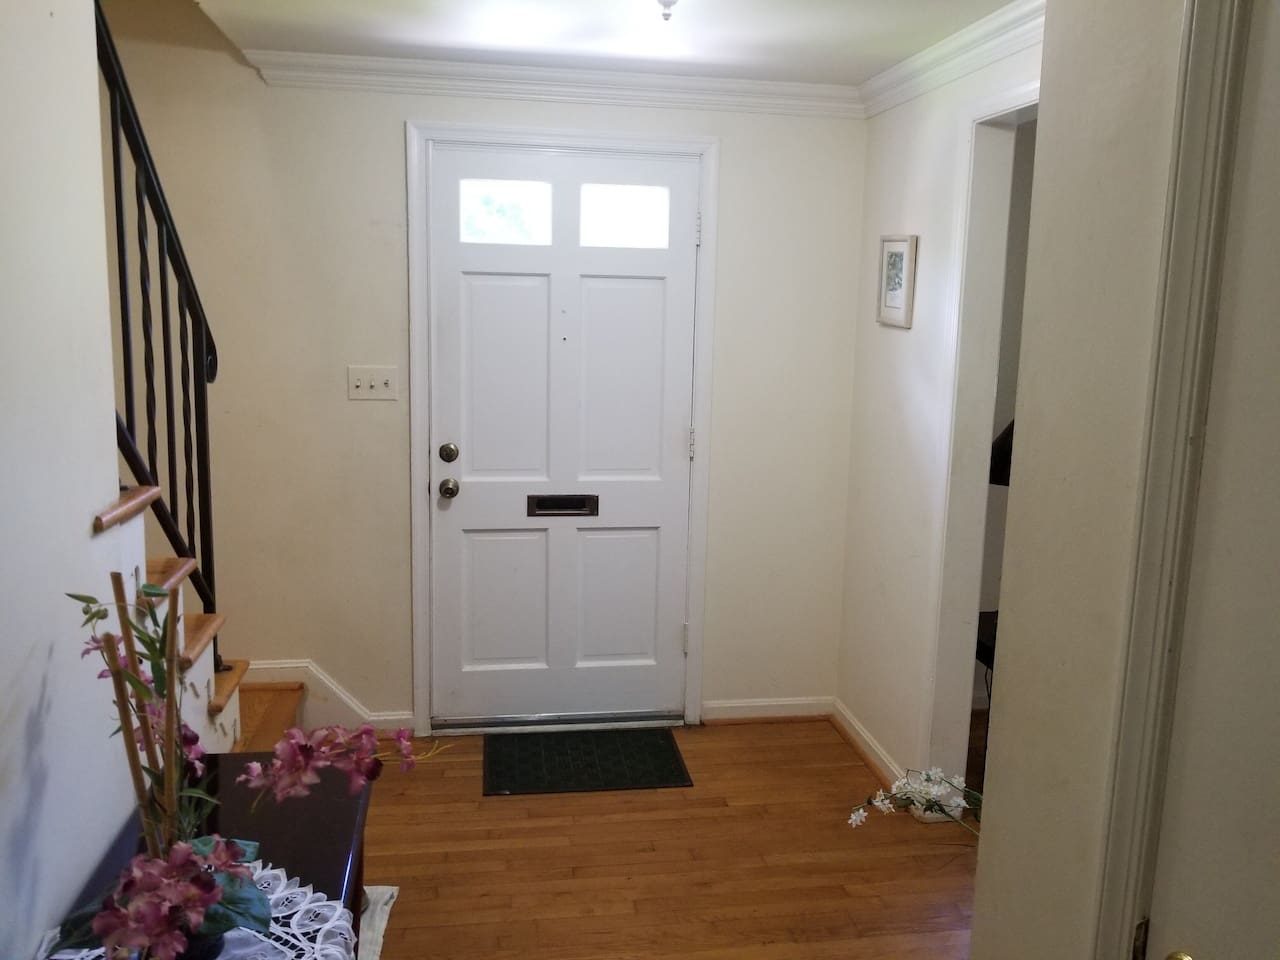 Entrance to home that leads to kitchen or upstairs.